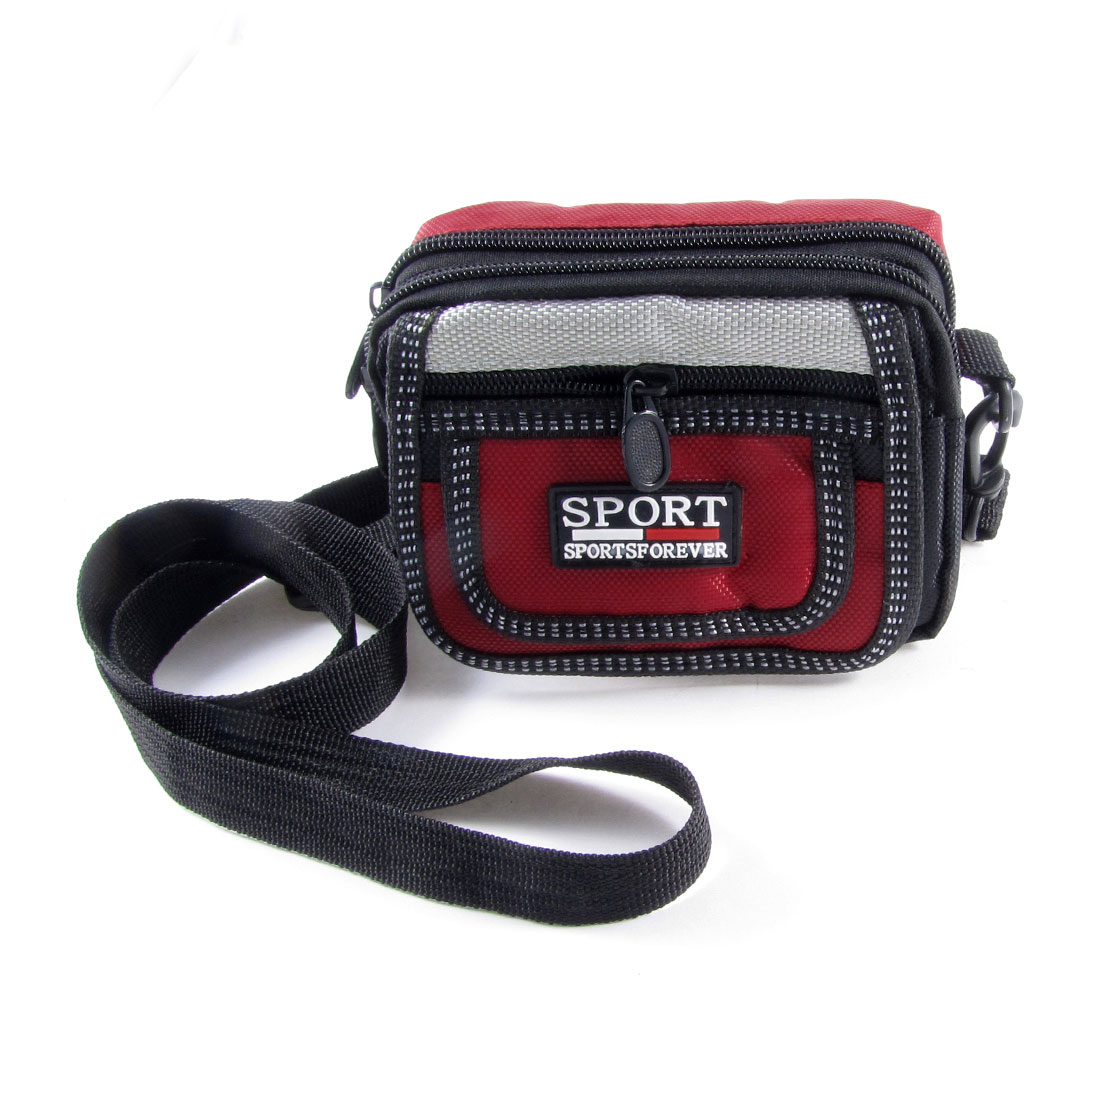 Outdoor Black Carmine 2 Compartment Nylon Phone Digital Camera Bag